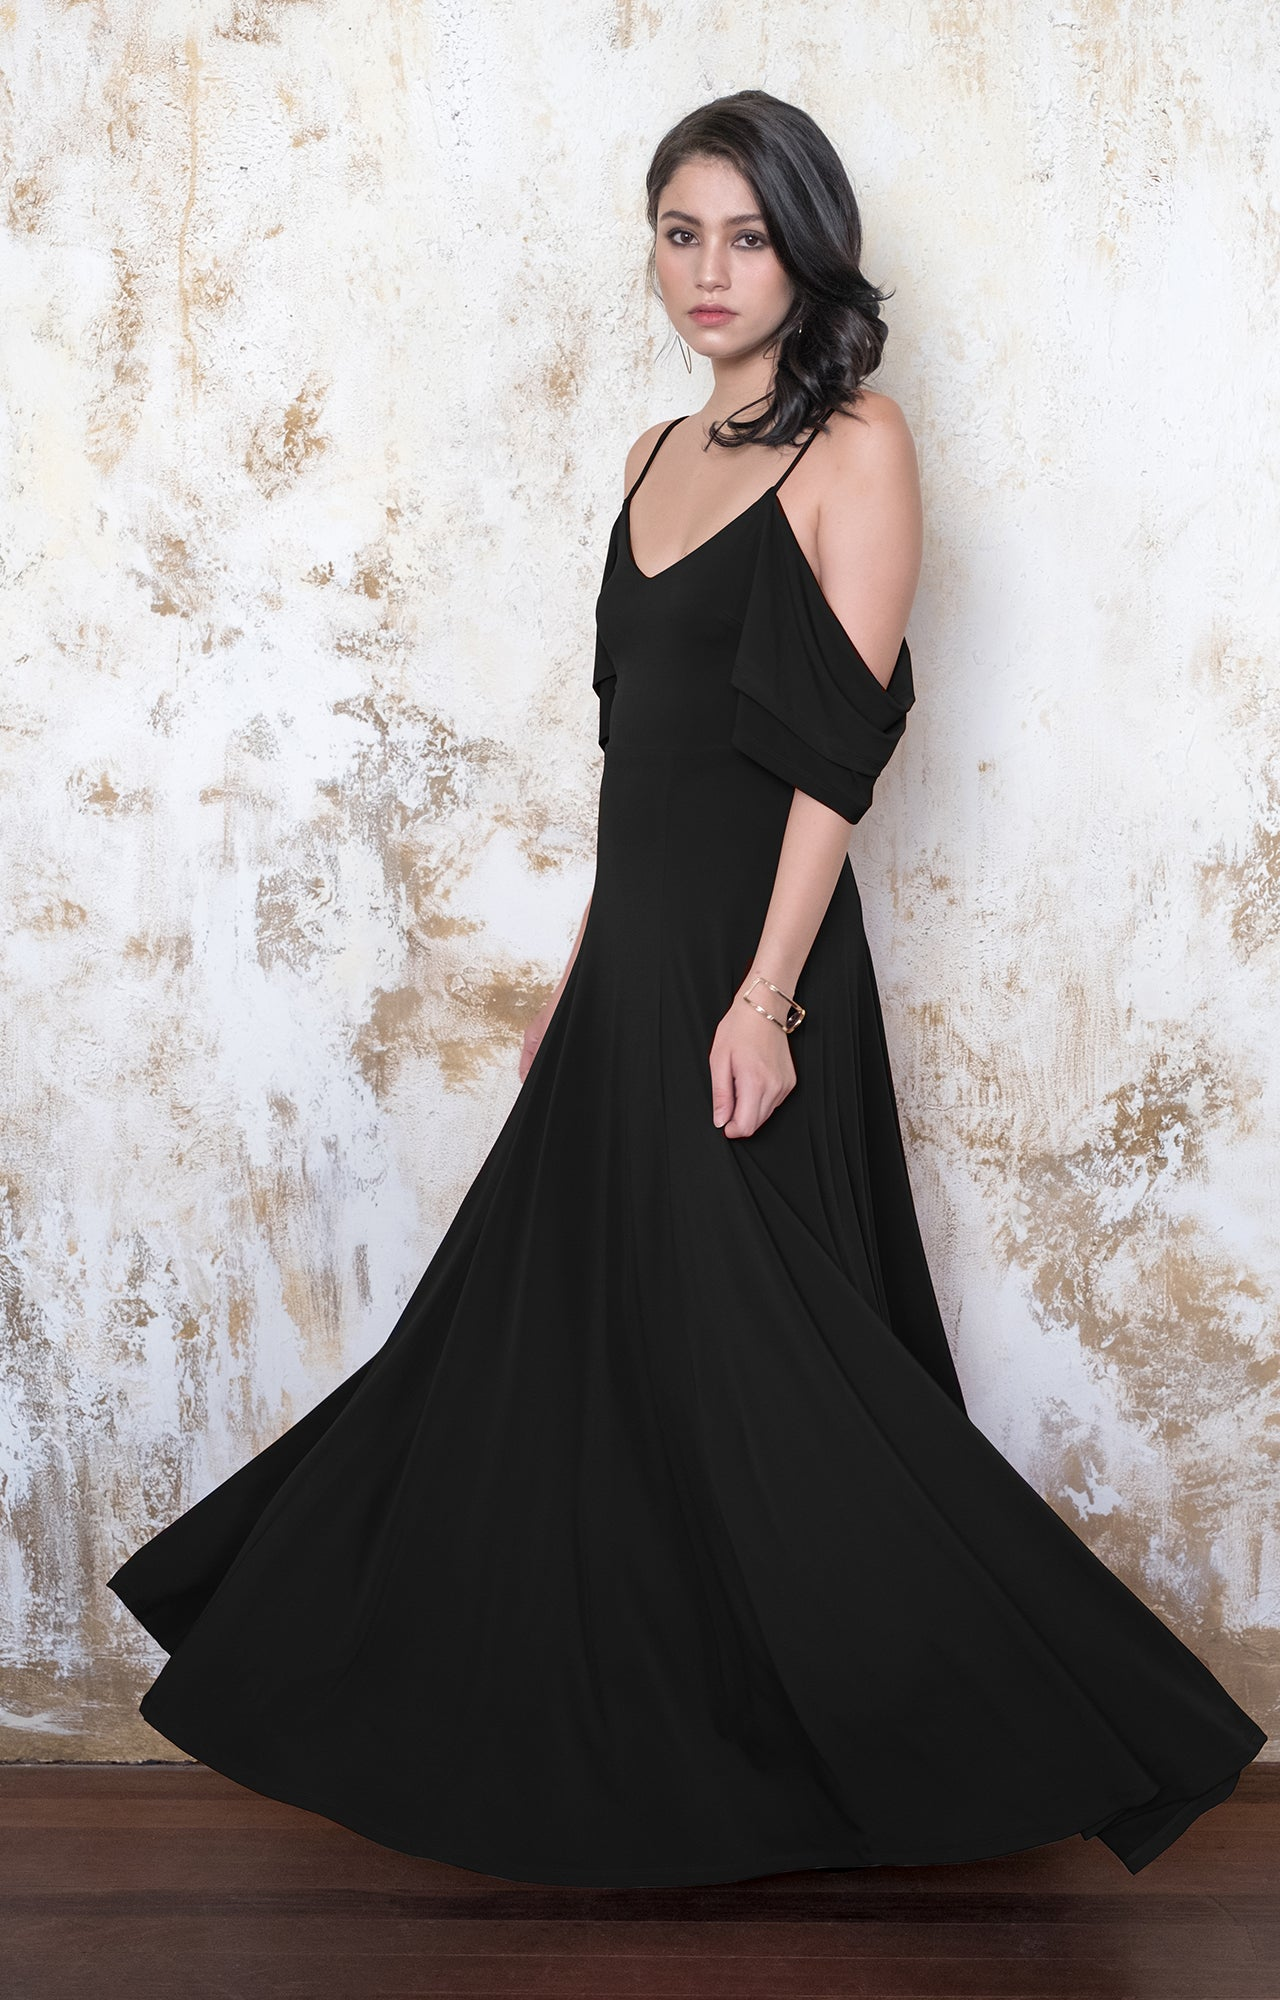 45a0d46f316 Bridesmaid Cocktail Maxi Dress Party Wedding Guest – Viris Zamara